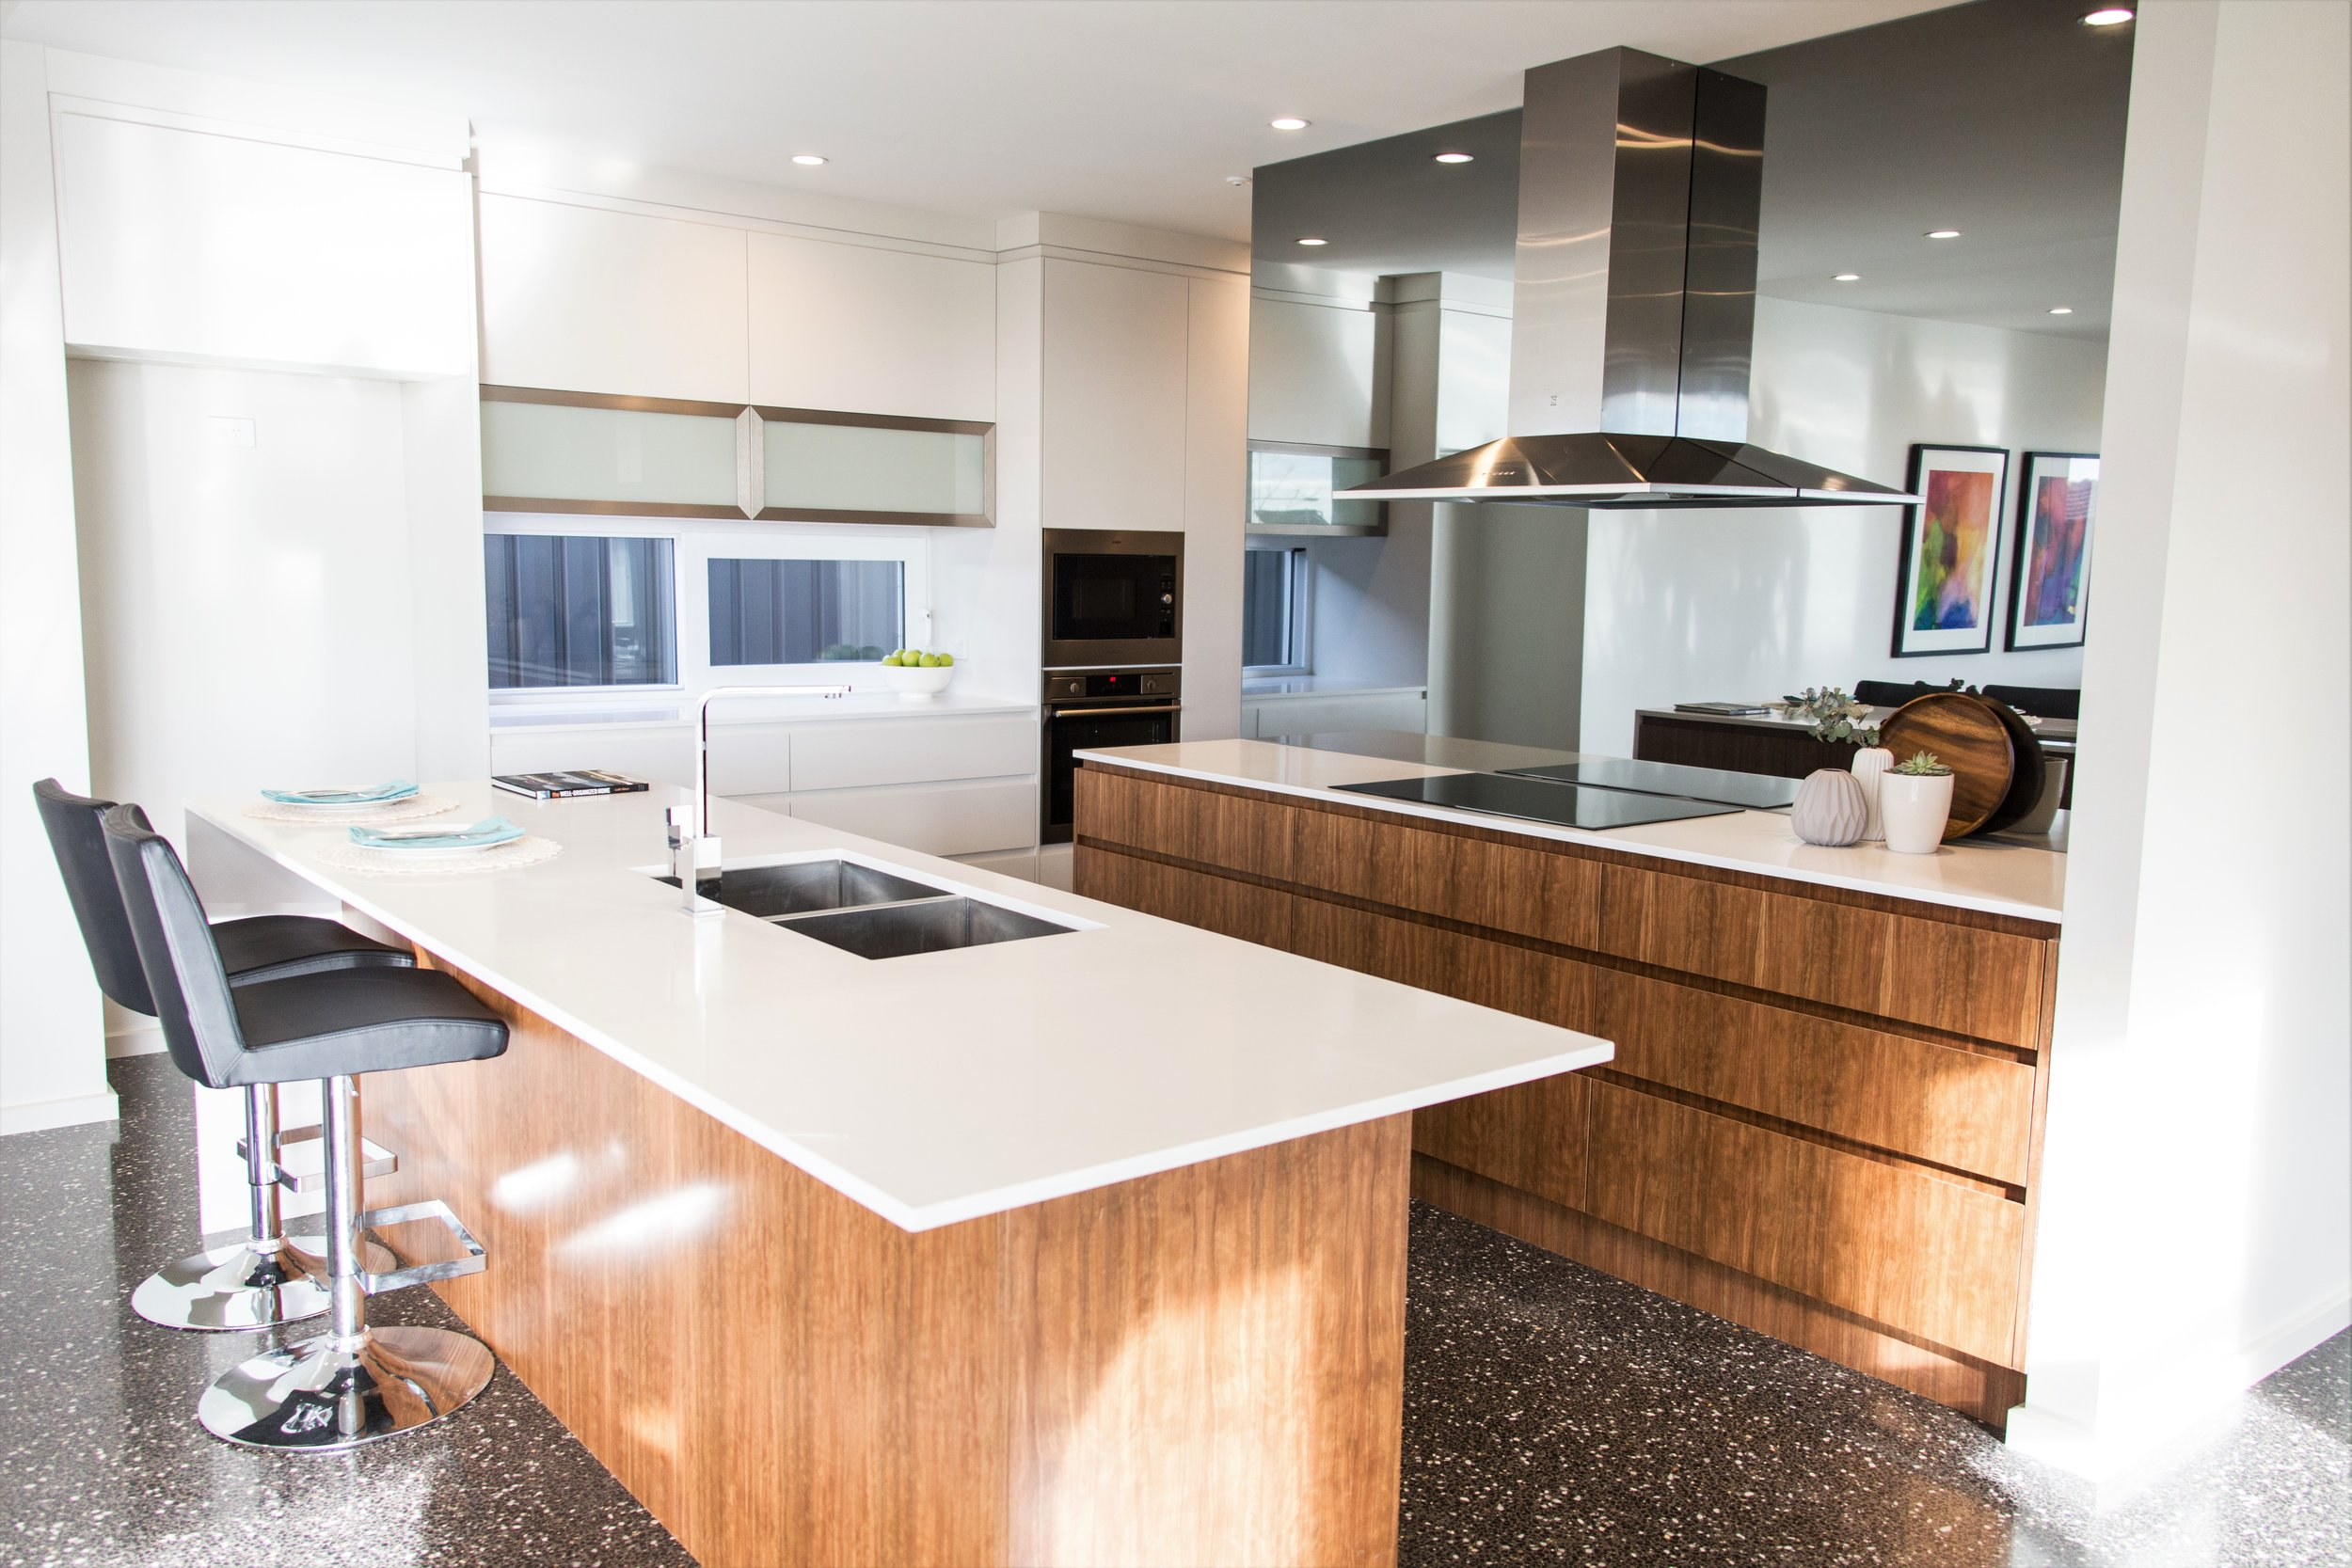 20160707-_C6A6515_iCandy Kitchens, Coombs.jpg